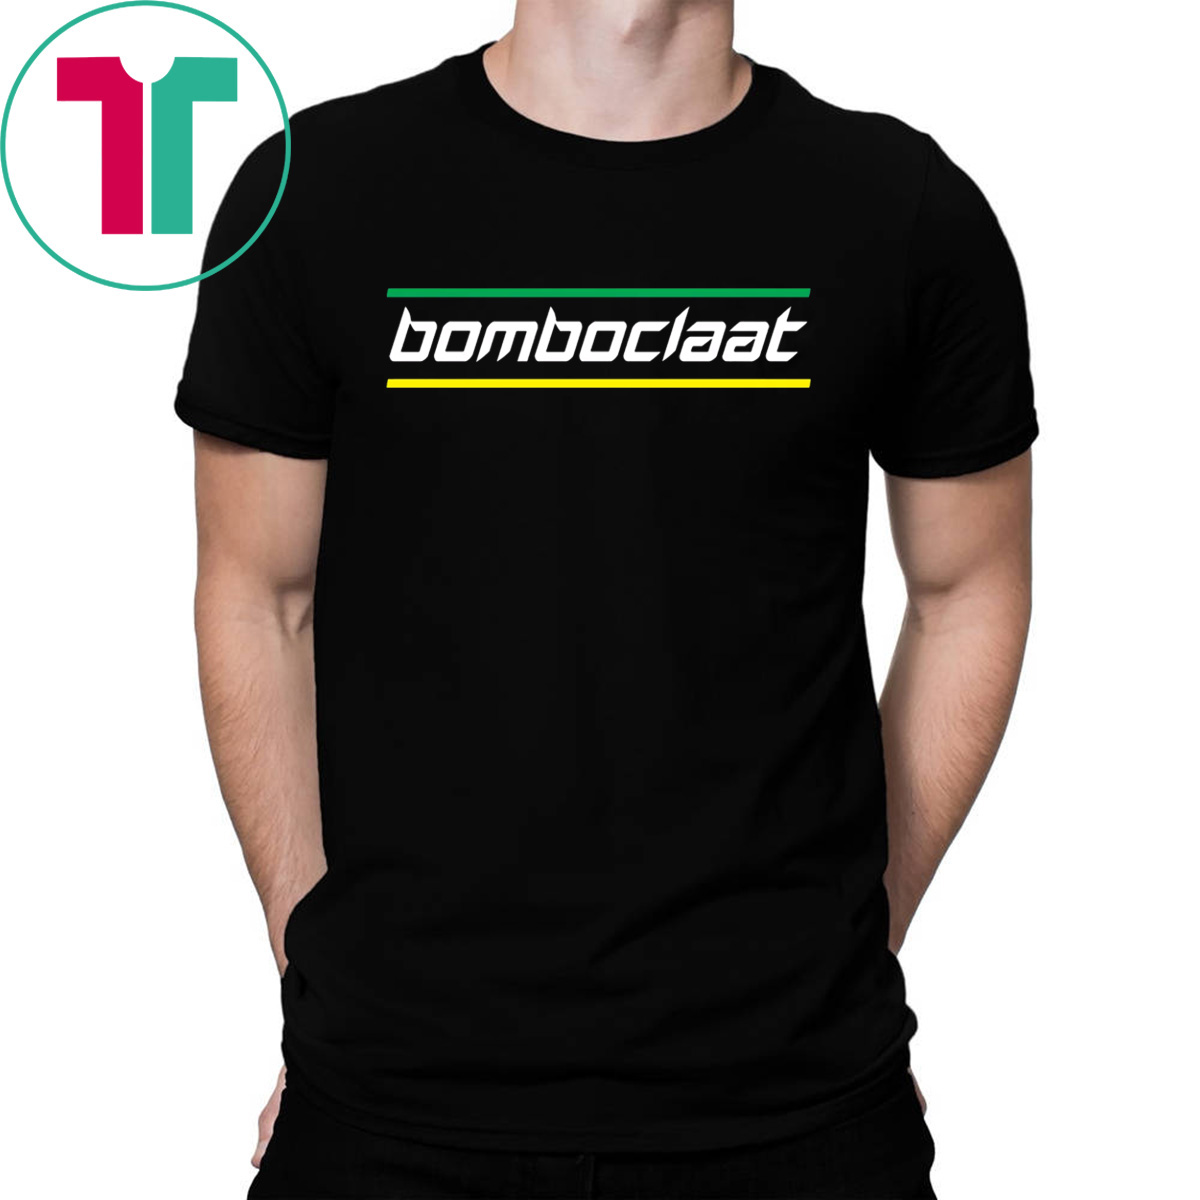 Bomboclaat Meme T-Shirt Jamaican Word